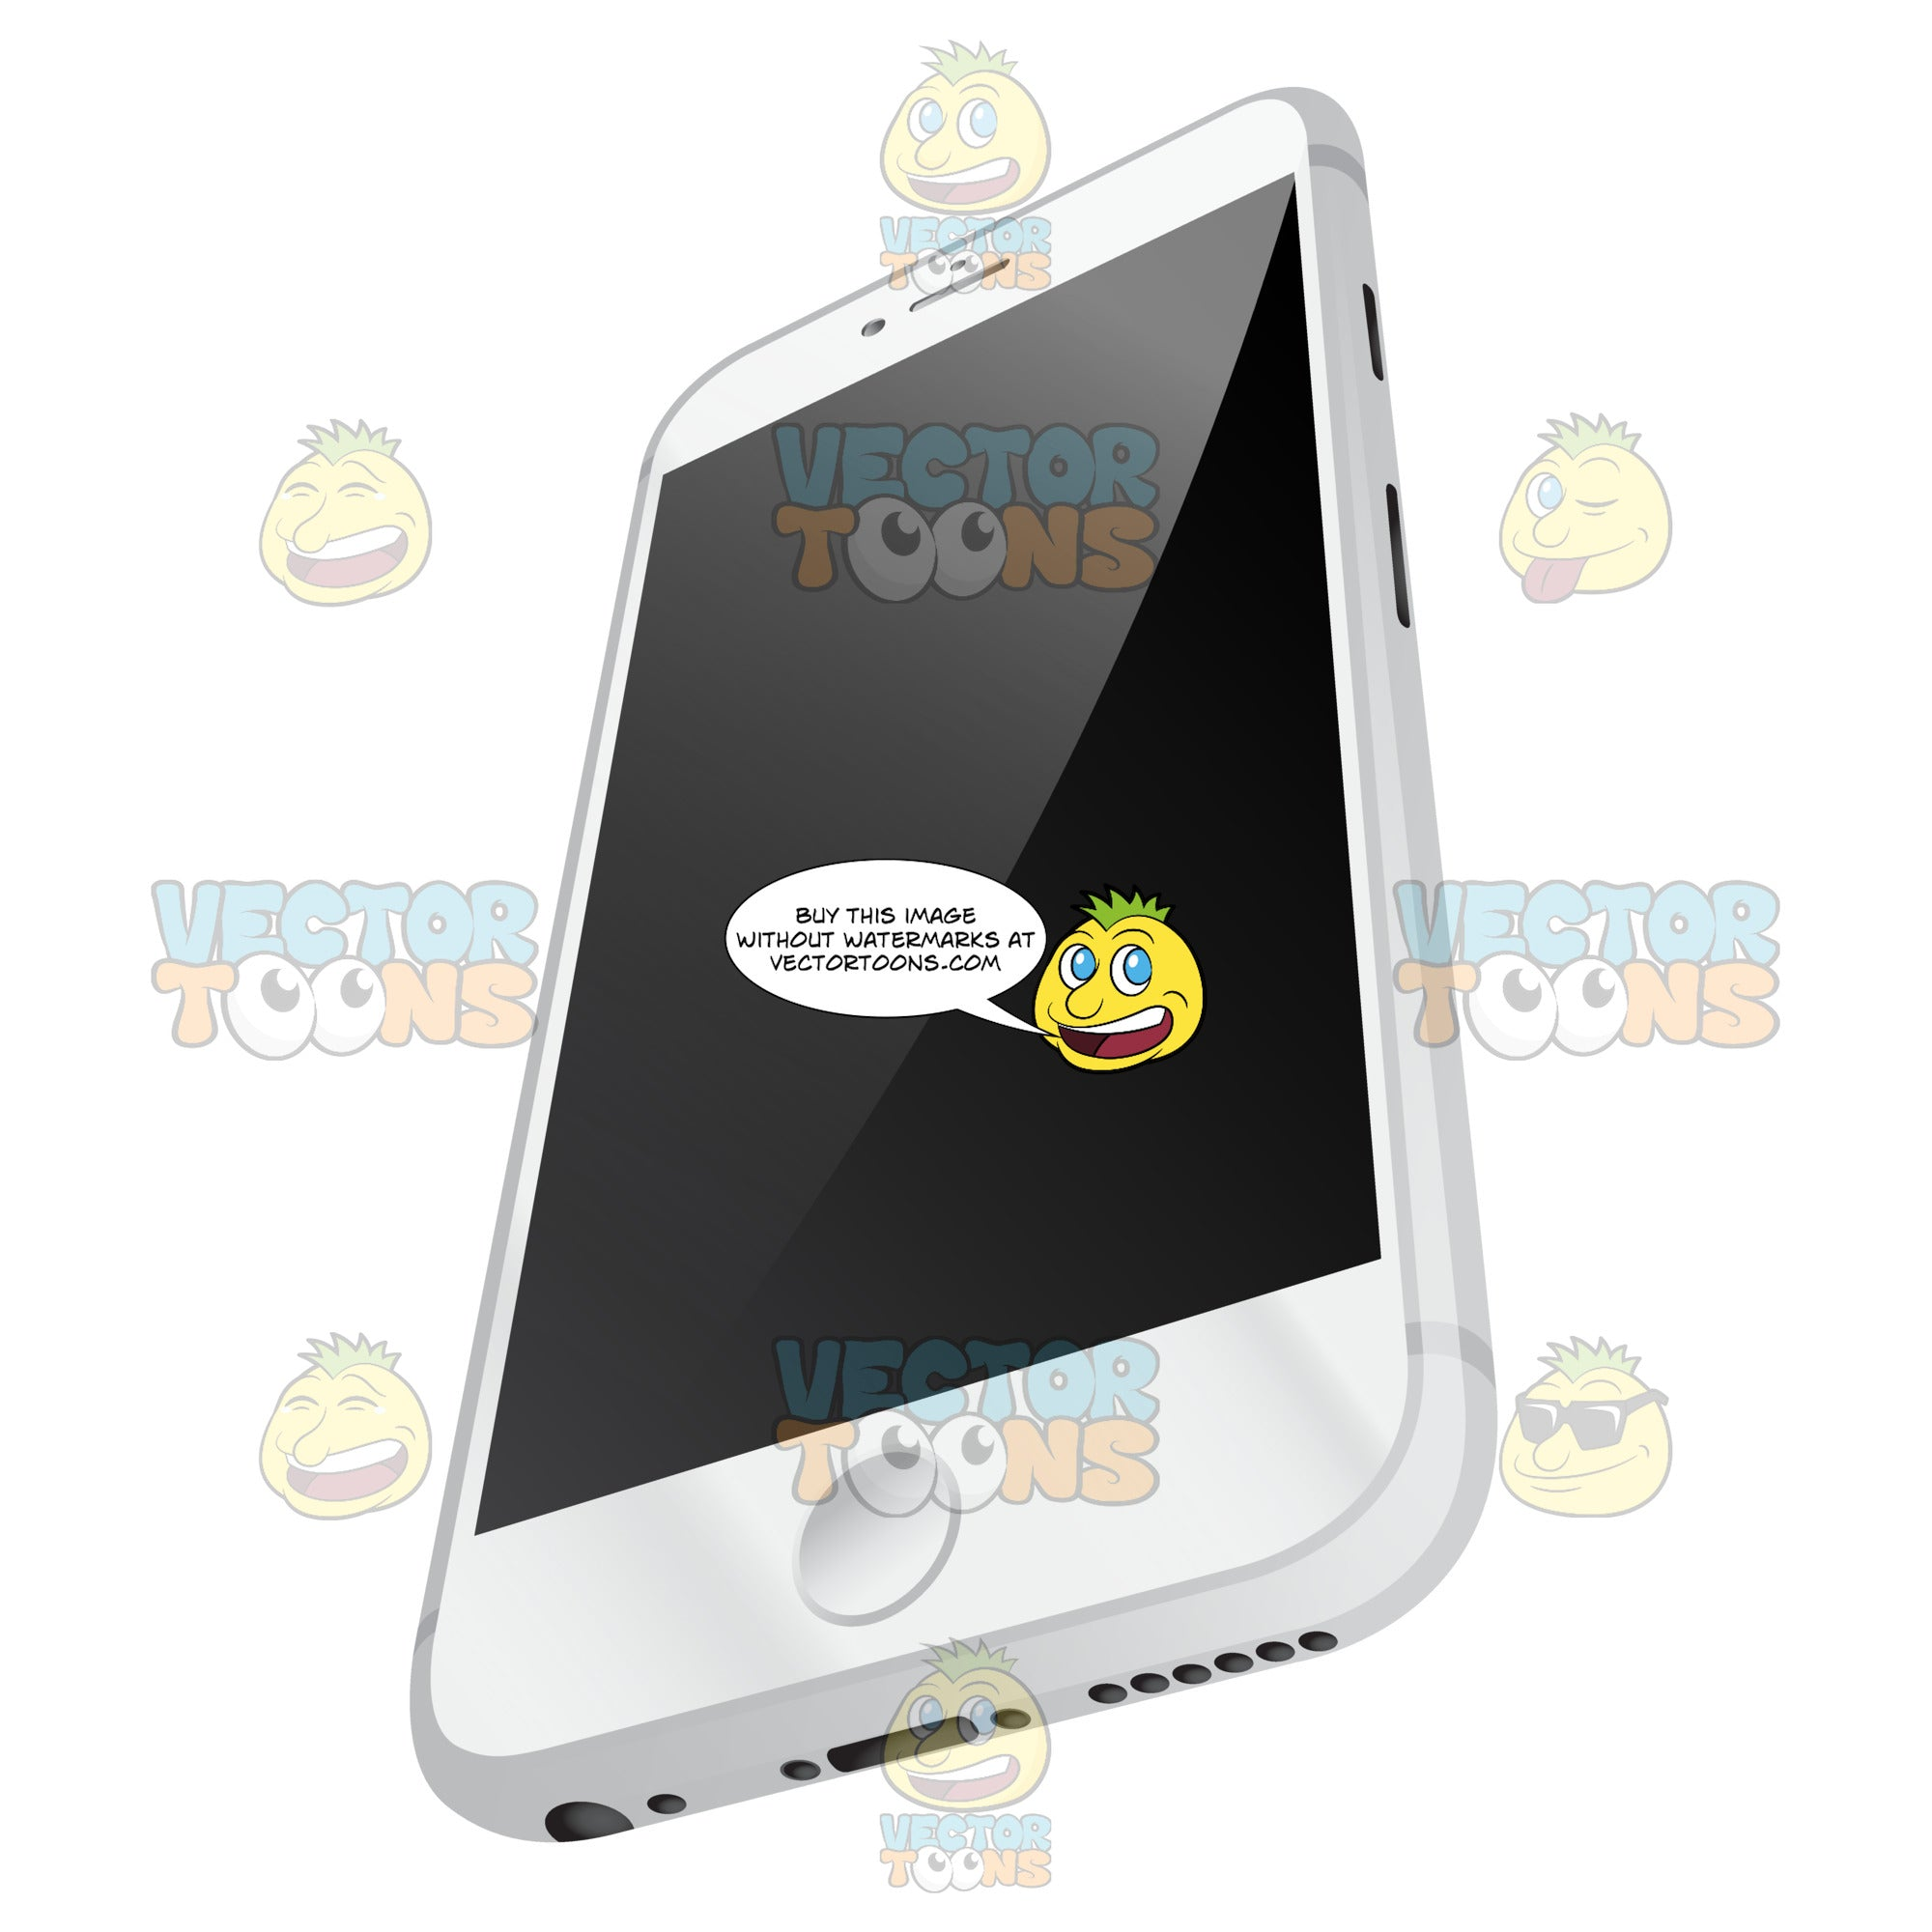 Perspective Vector Image Of Sleek White Mobile Phone With Silver Sides